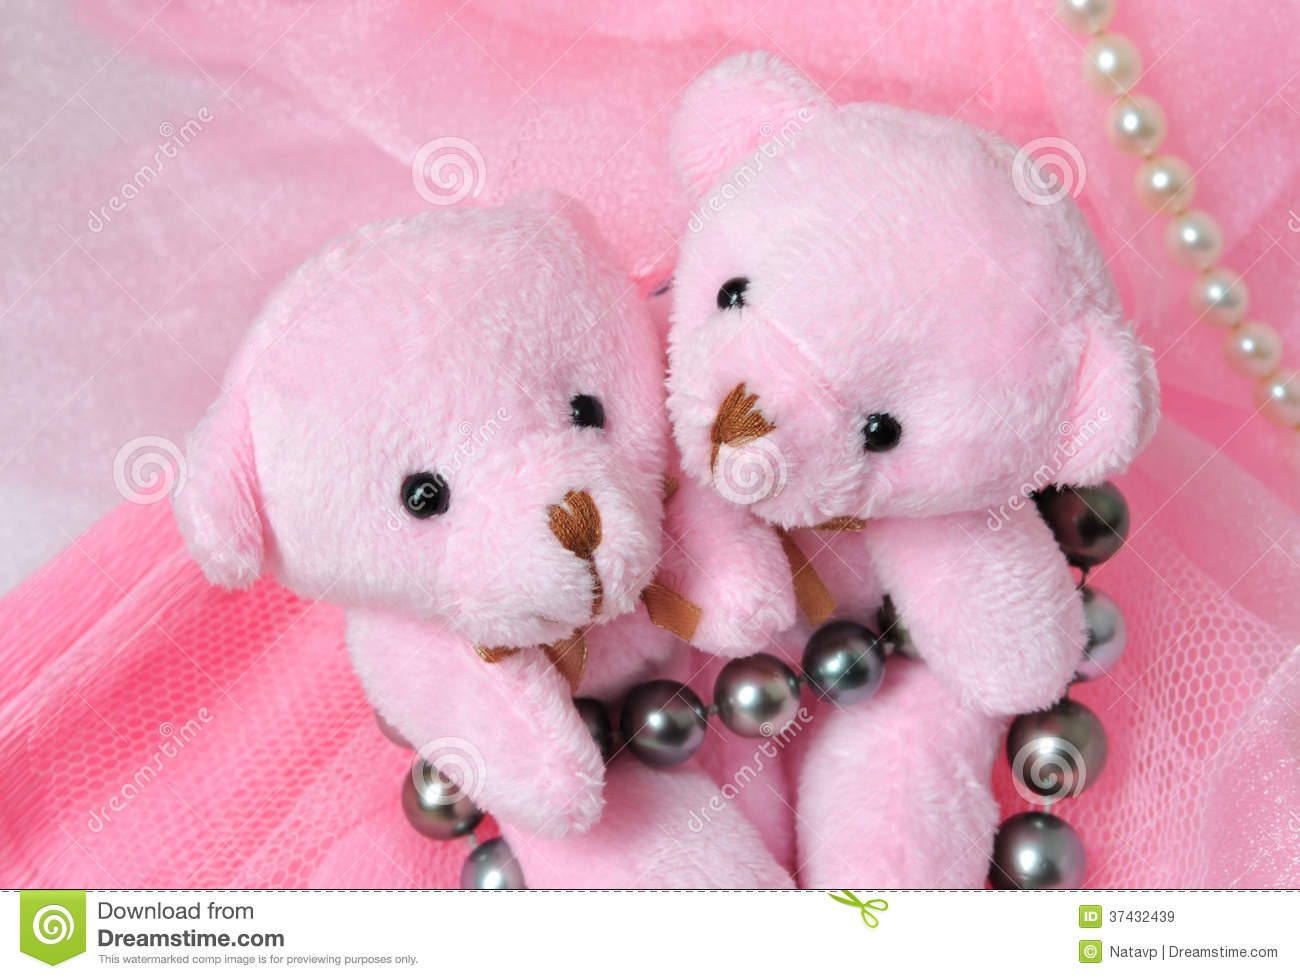 Cute Cartoon Face Wallpapers Two Amusing Pink Teddy Bear On Pink Background With Pearls